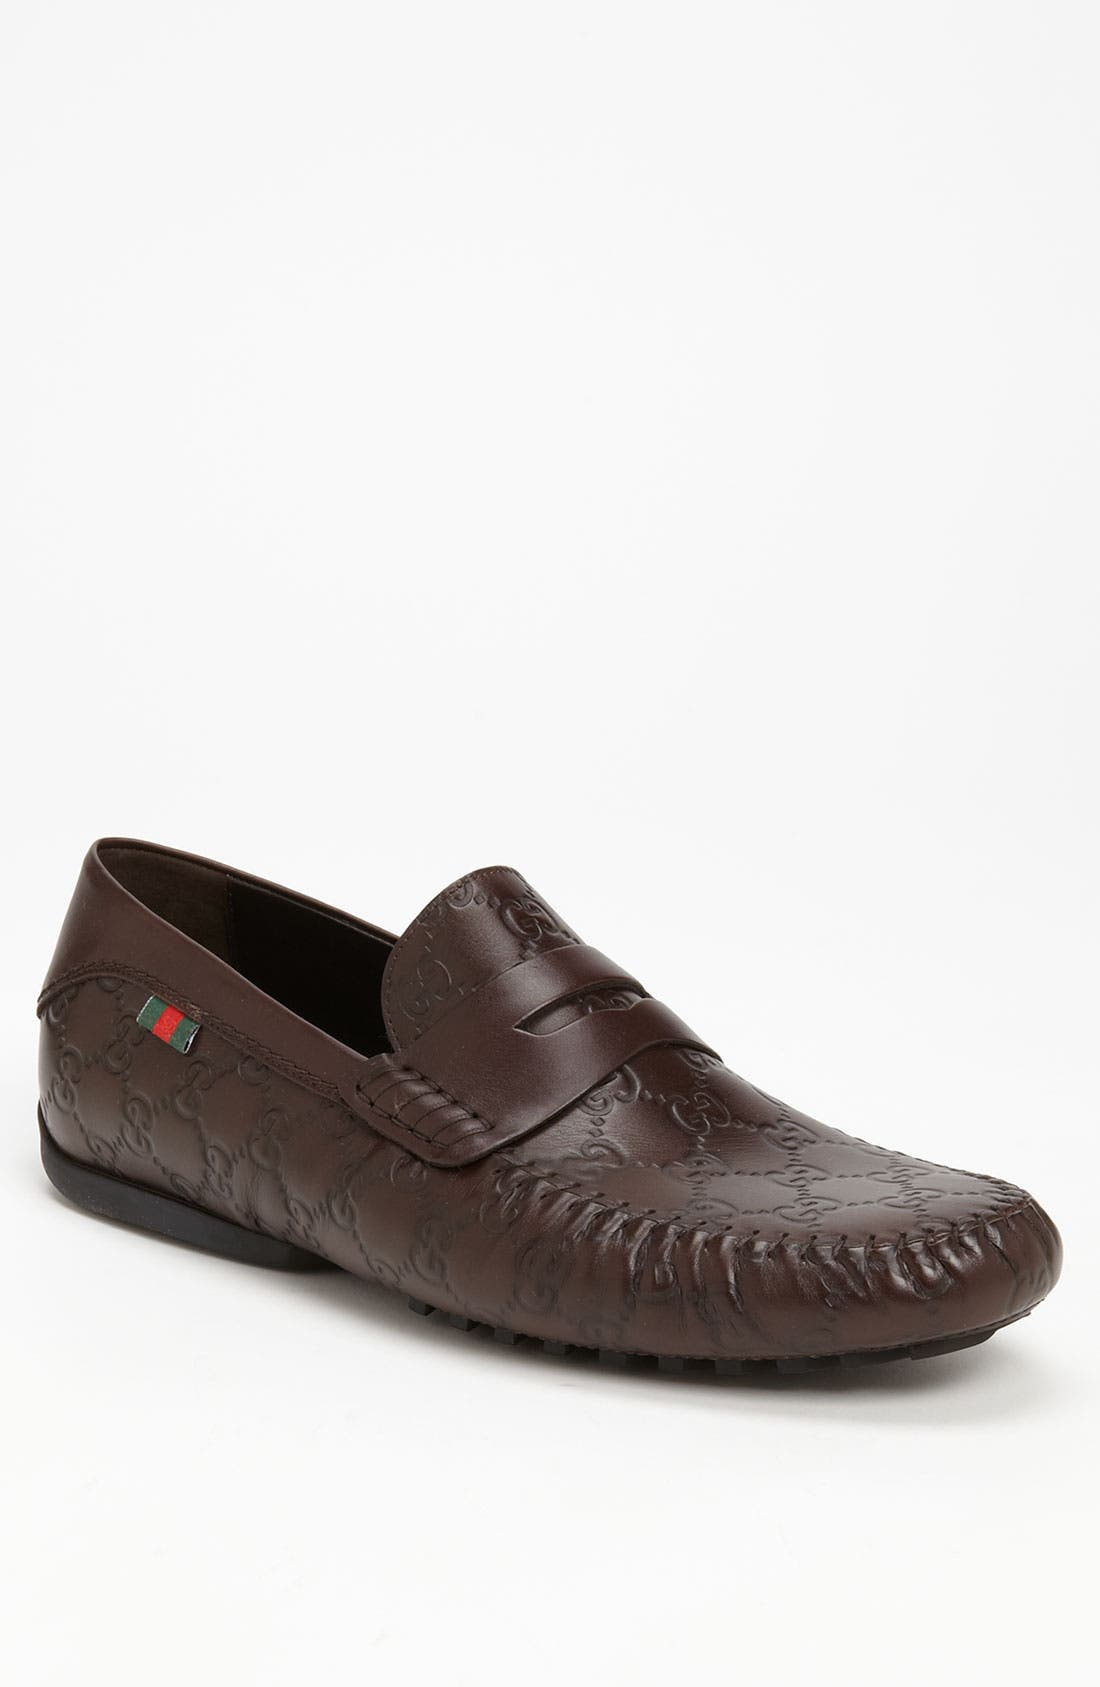 Alternate Image 1 Selected - Gucci 'San Marino' Driving Shoe